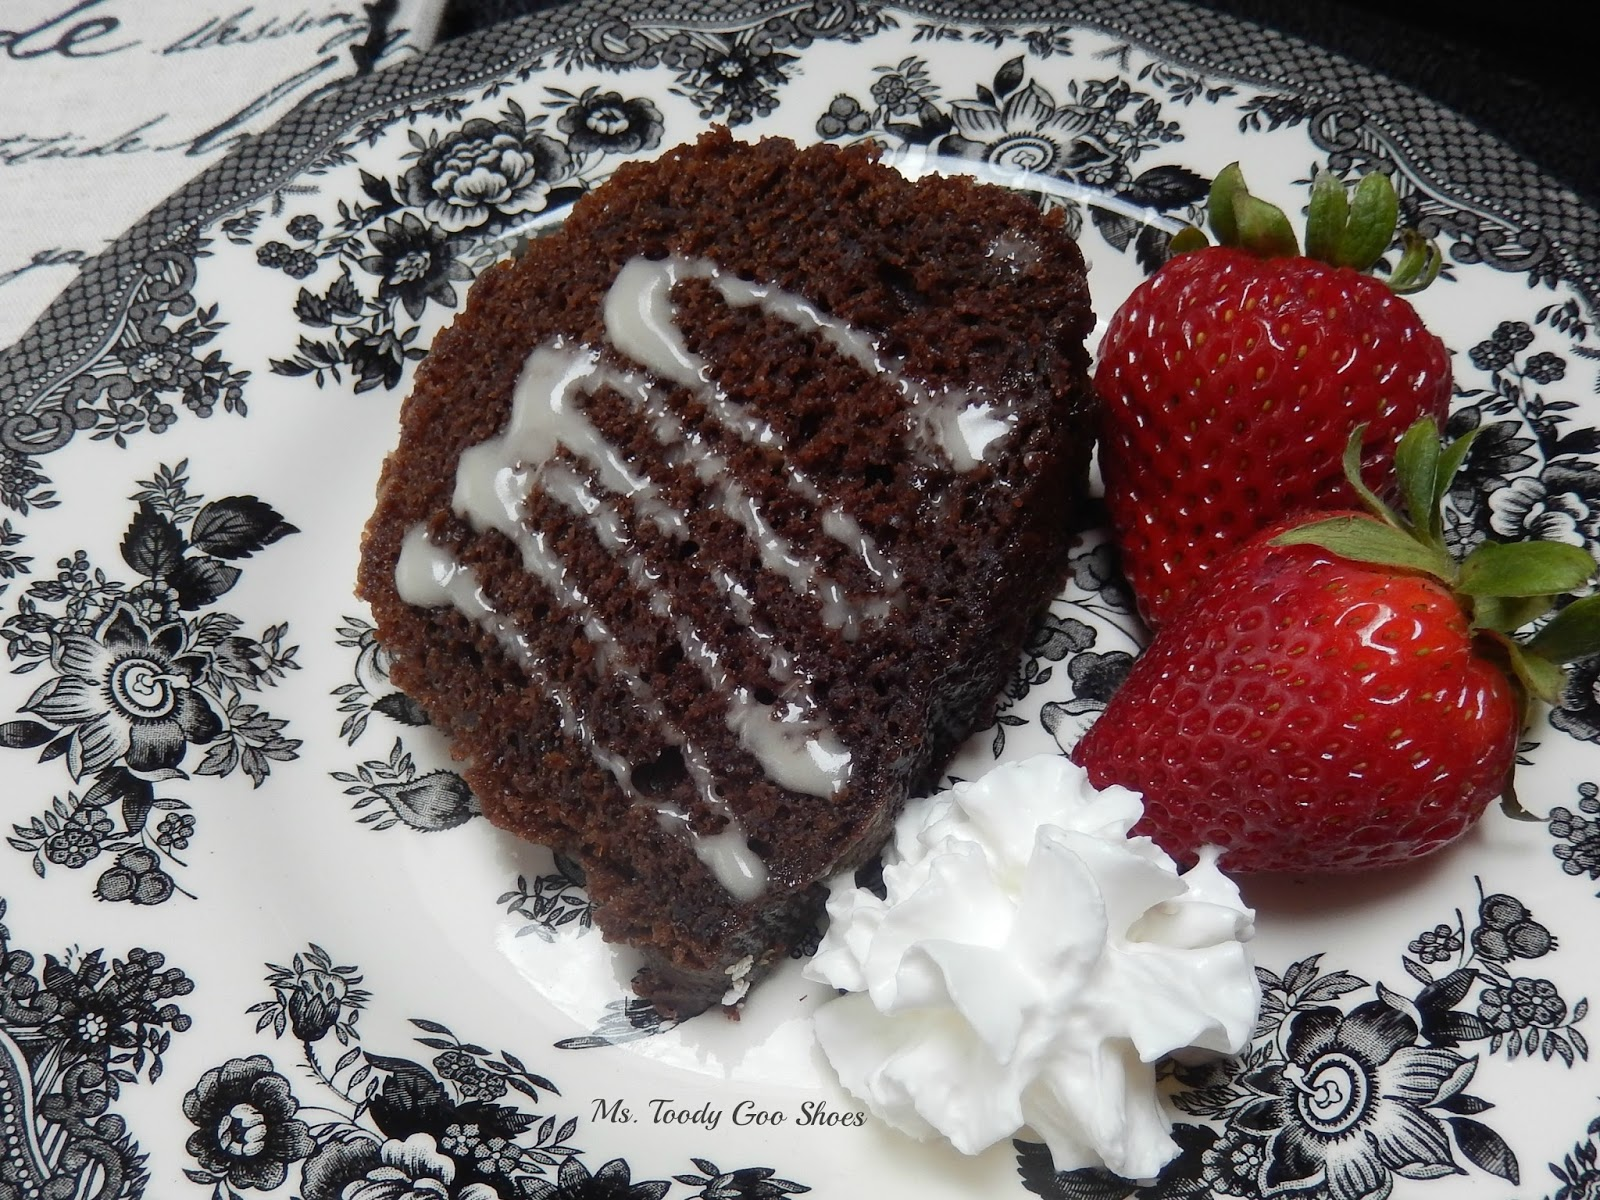 Died & Went to Heaven Chocolate Bundt Cake -- Ms. Toody Goo Shoes